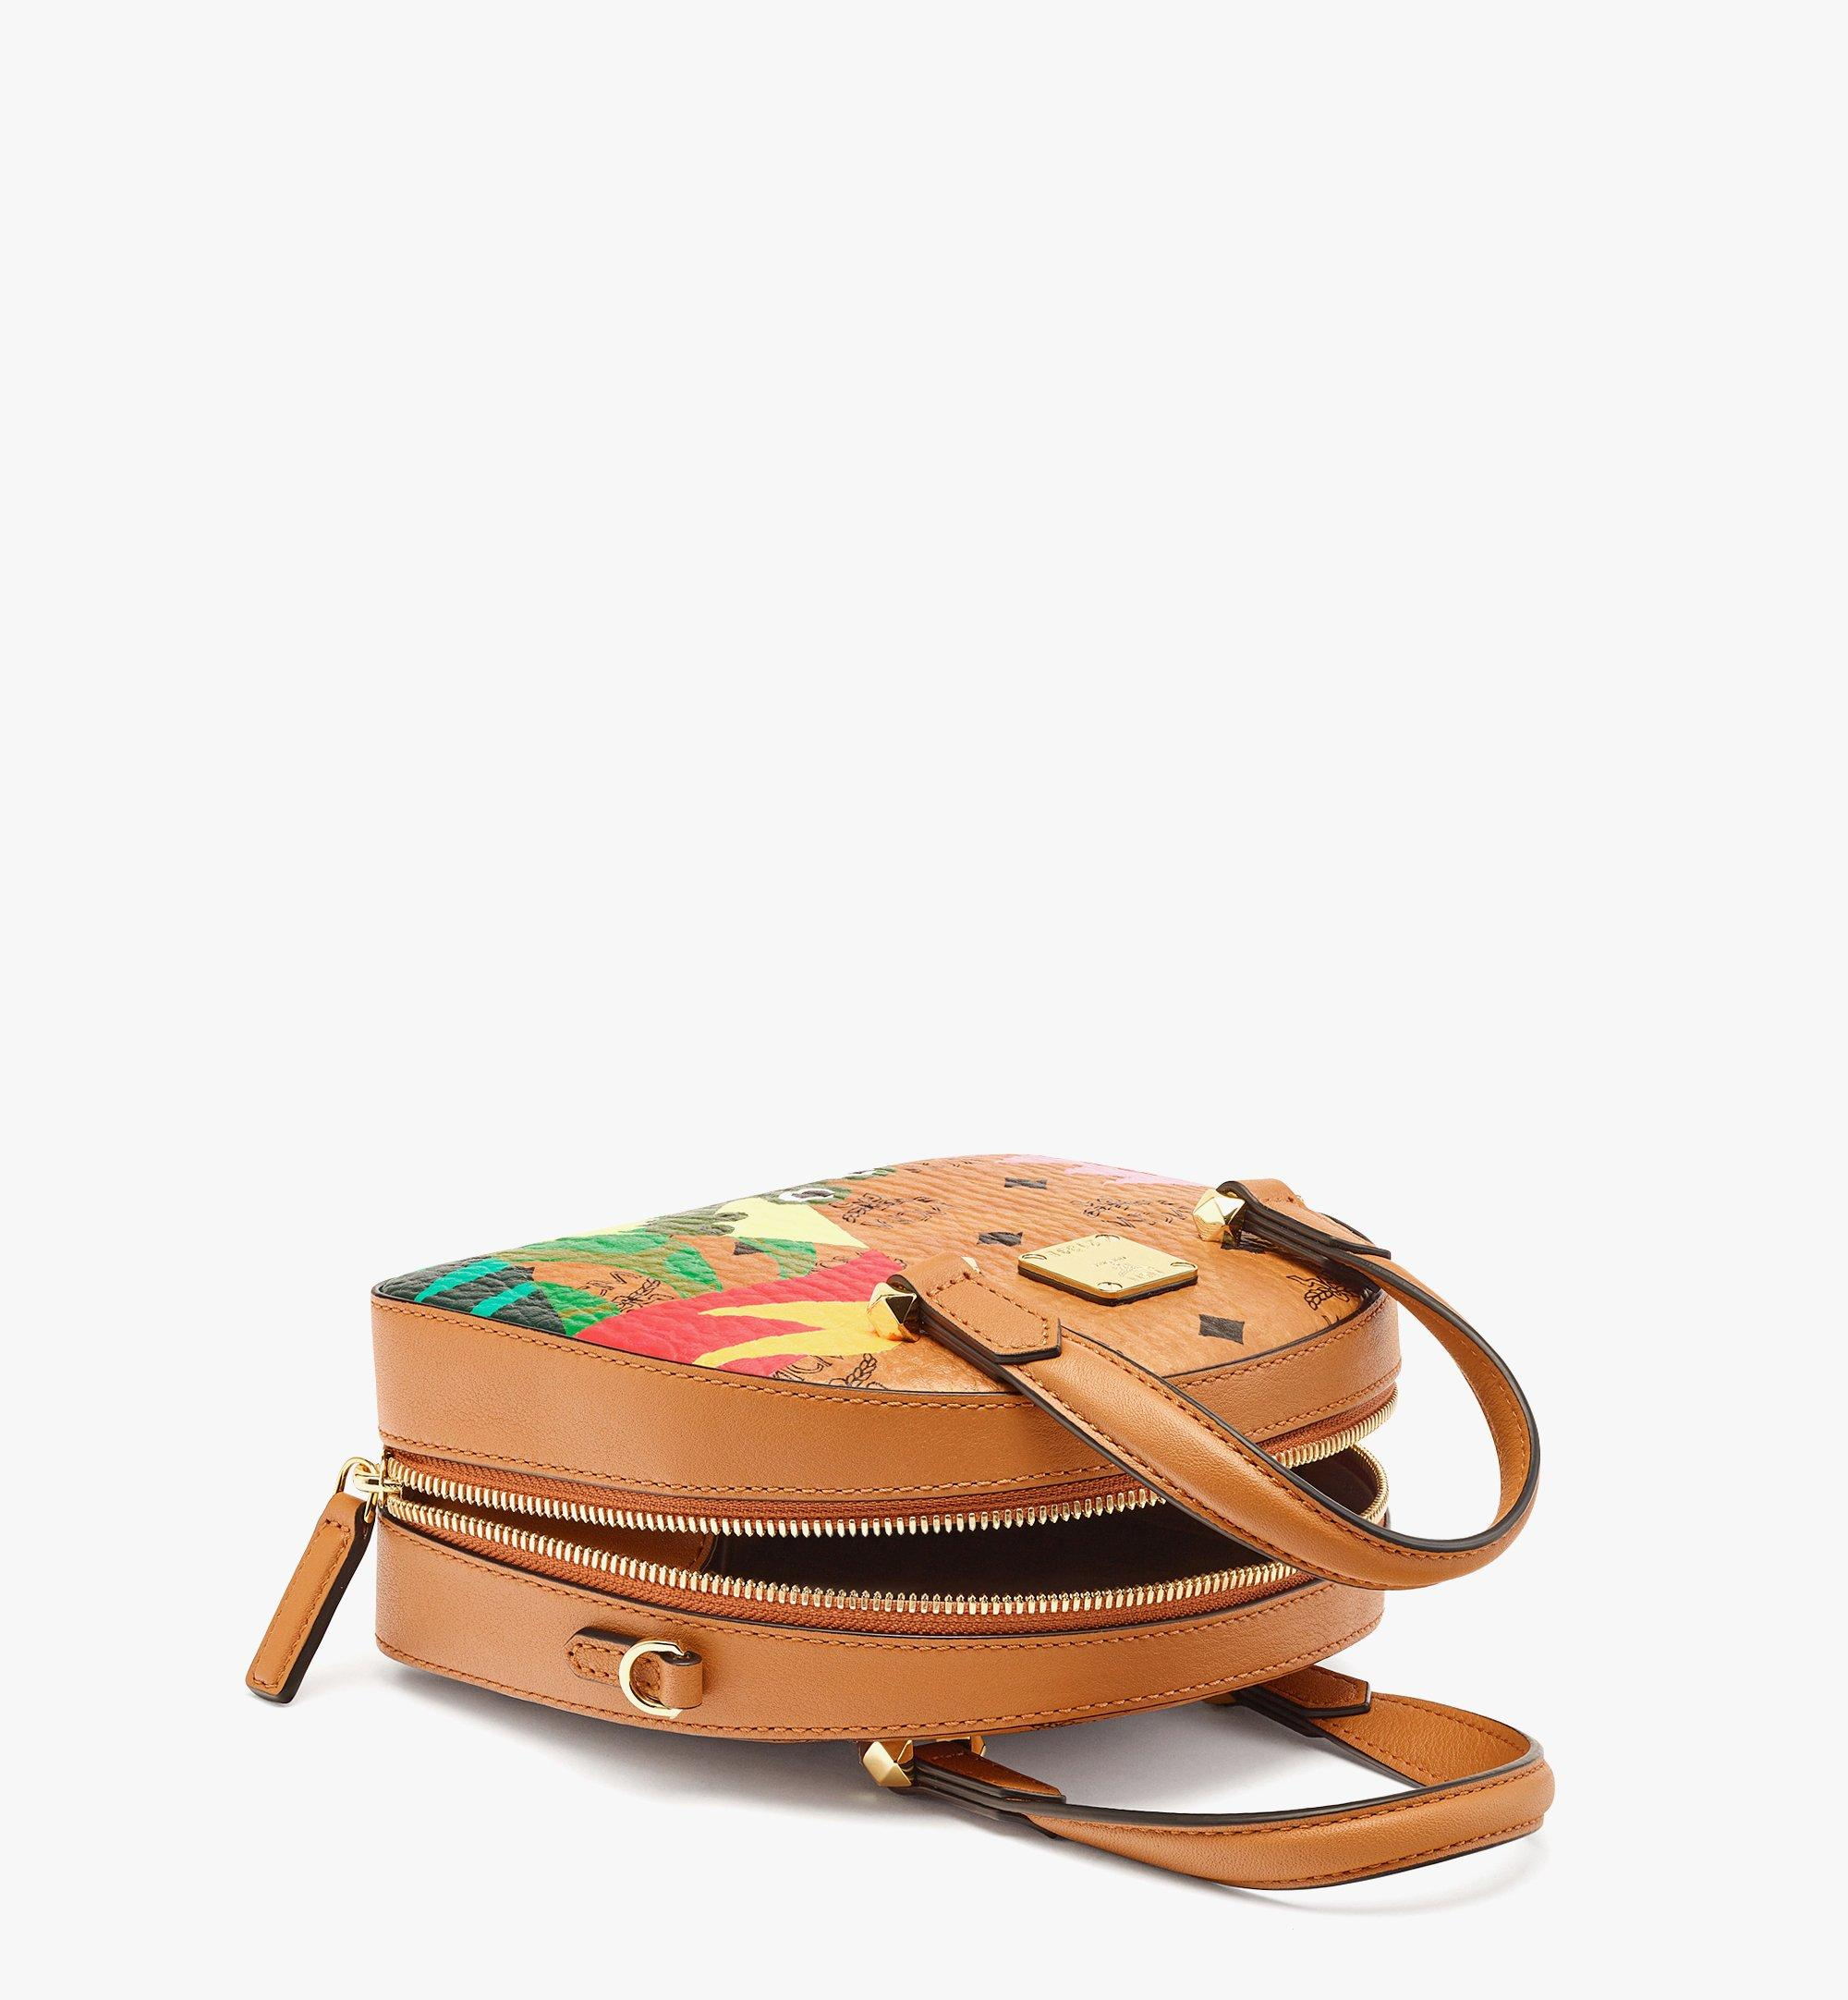 MCM Upcycling Project Half Moon Tote in Visetos Cognac MWTBSUP02CO001 Alternate View 2